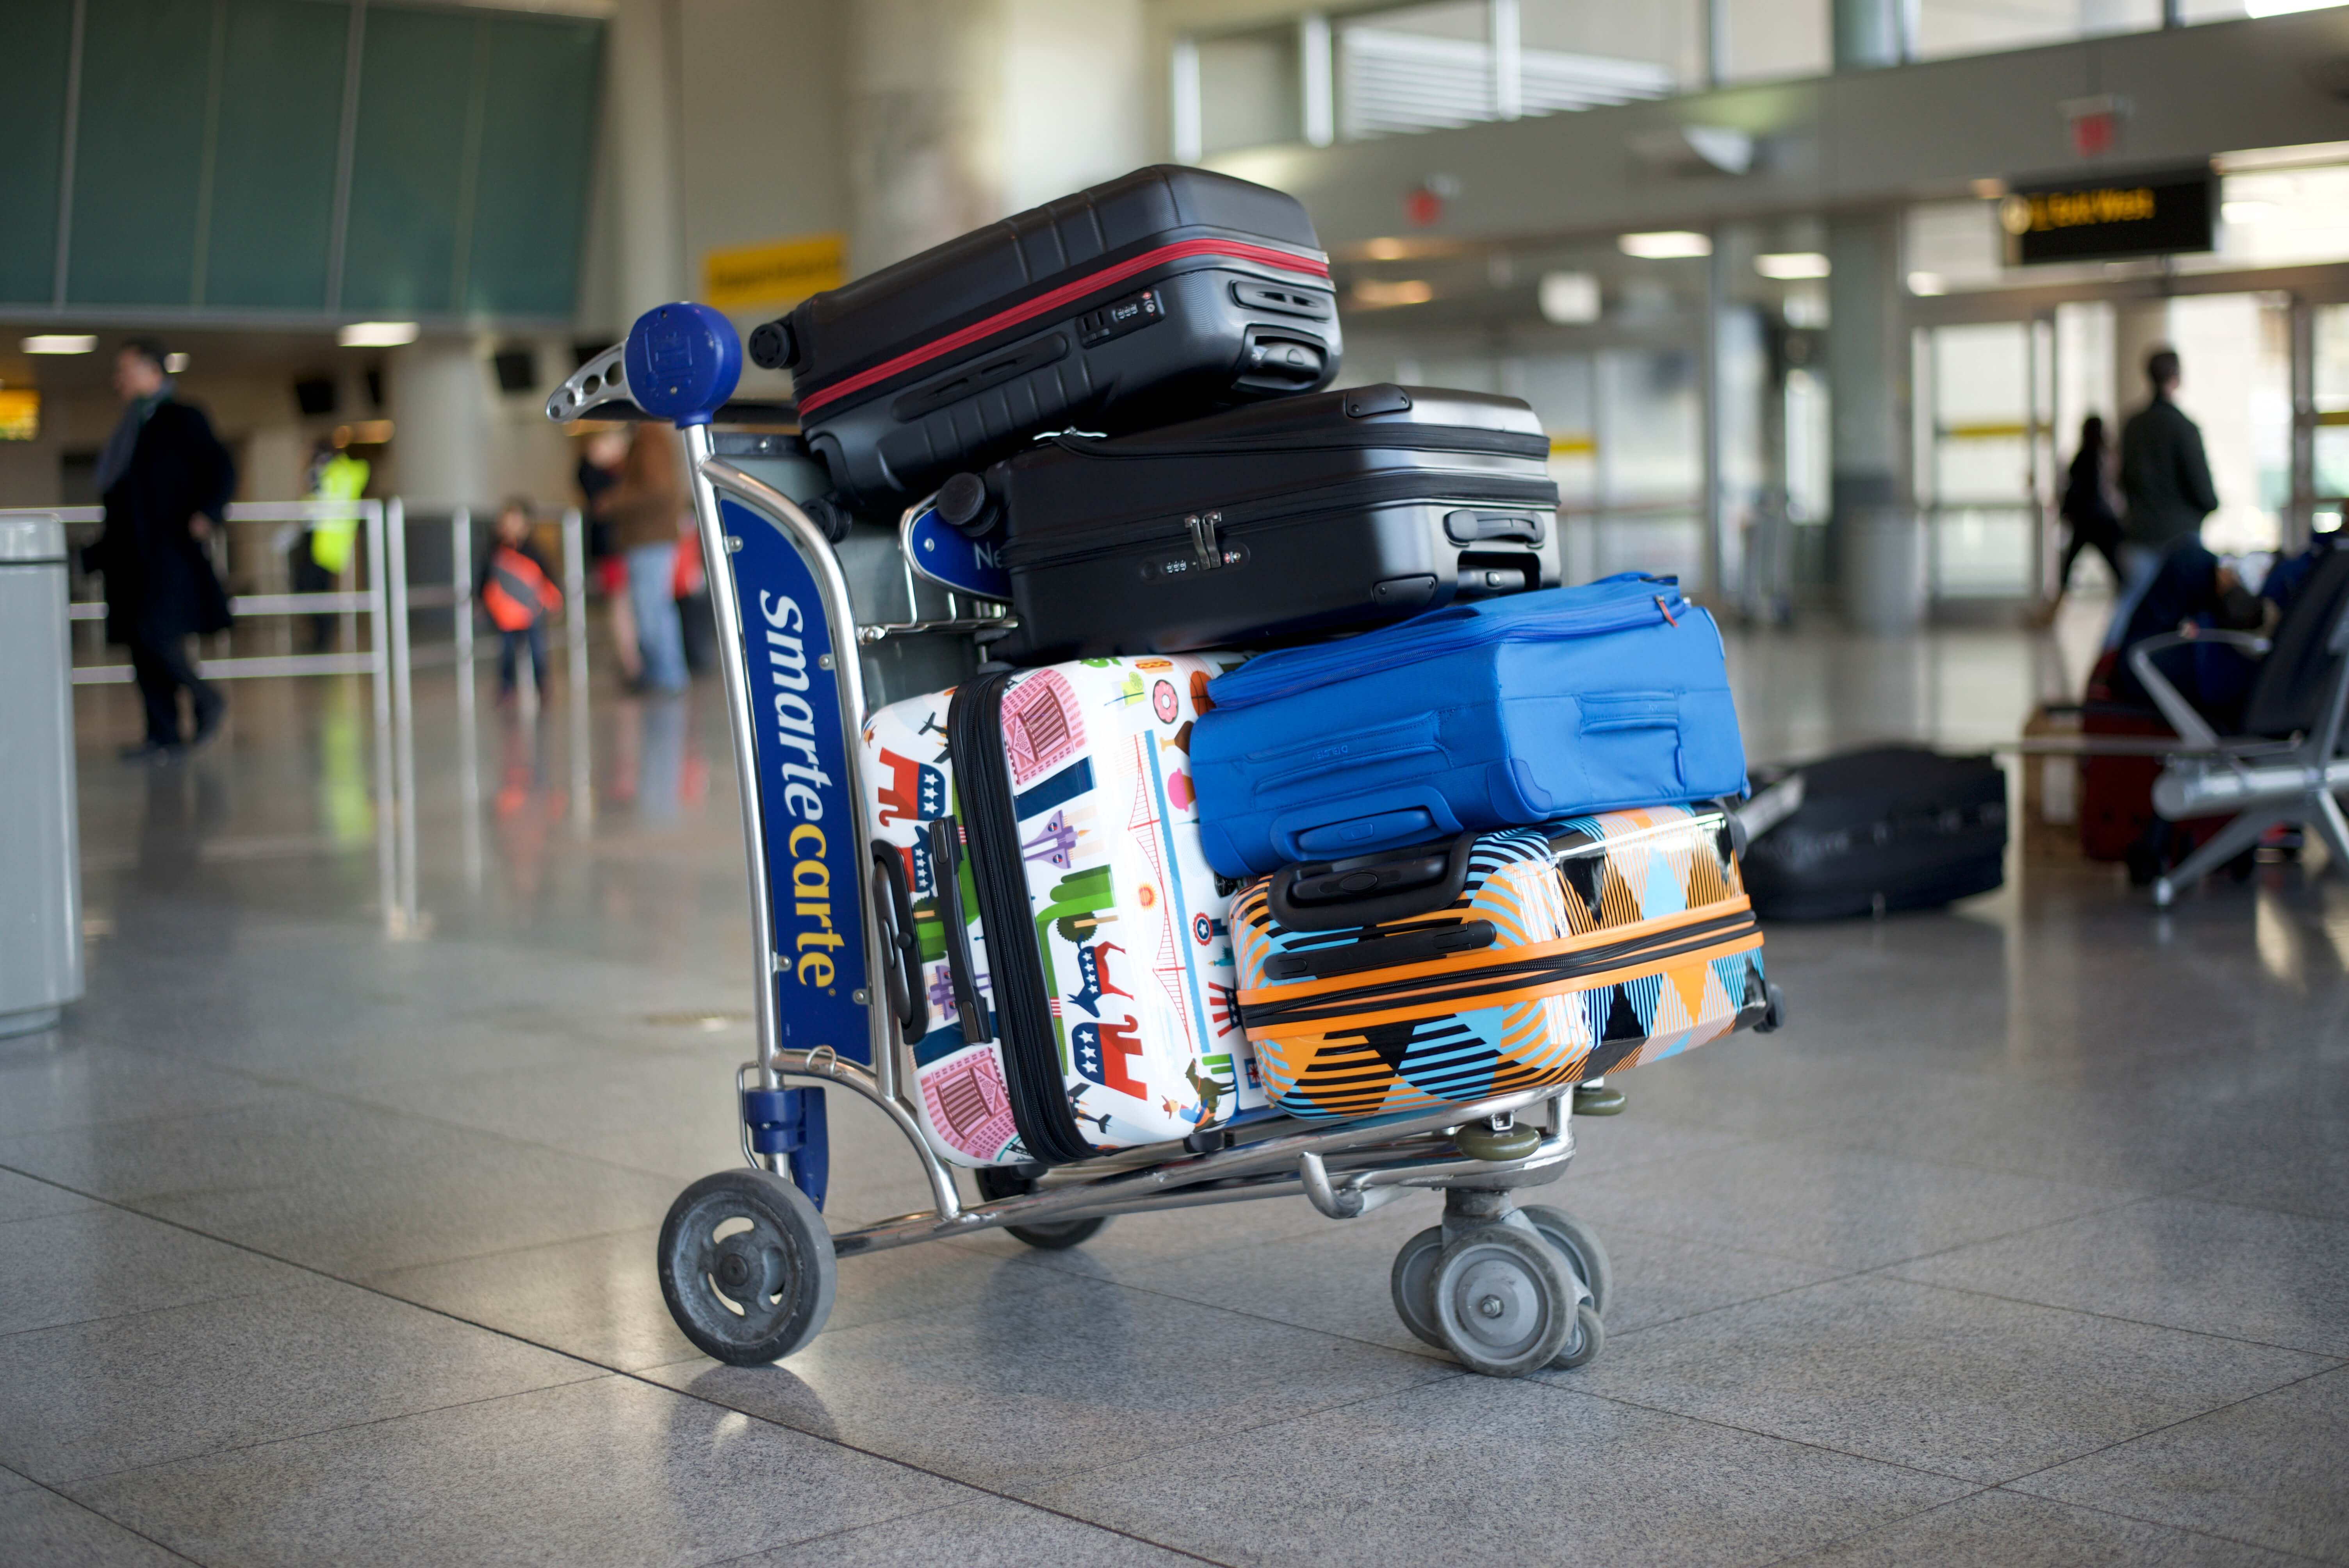 Carry On Luggage Size The Simple Guide To Carry On Size By Airline